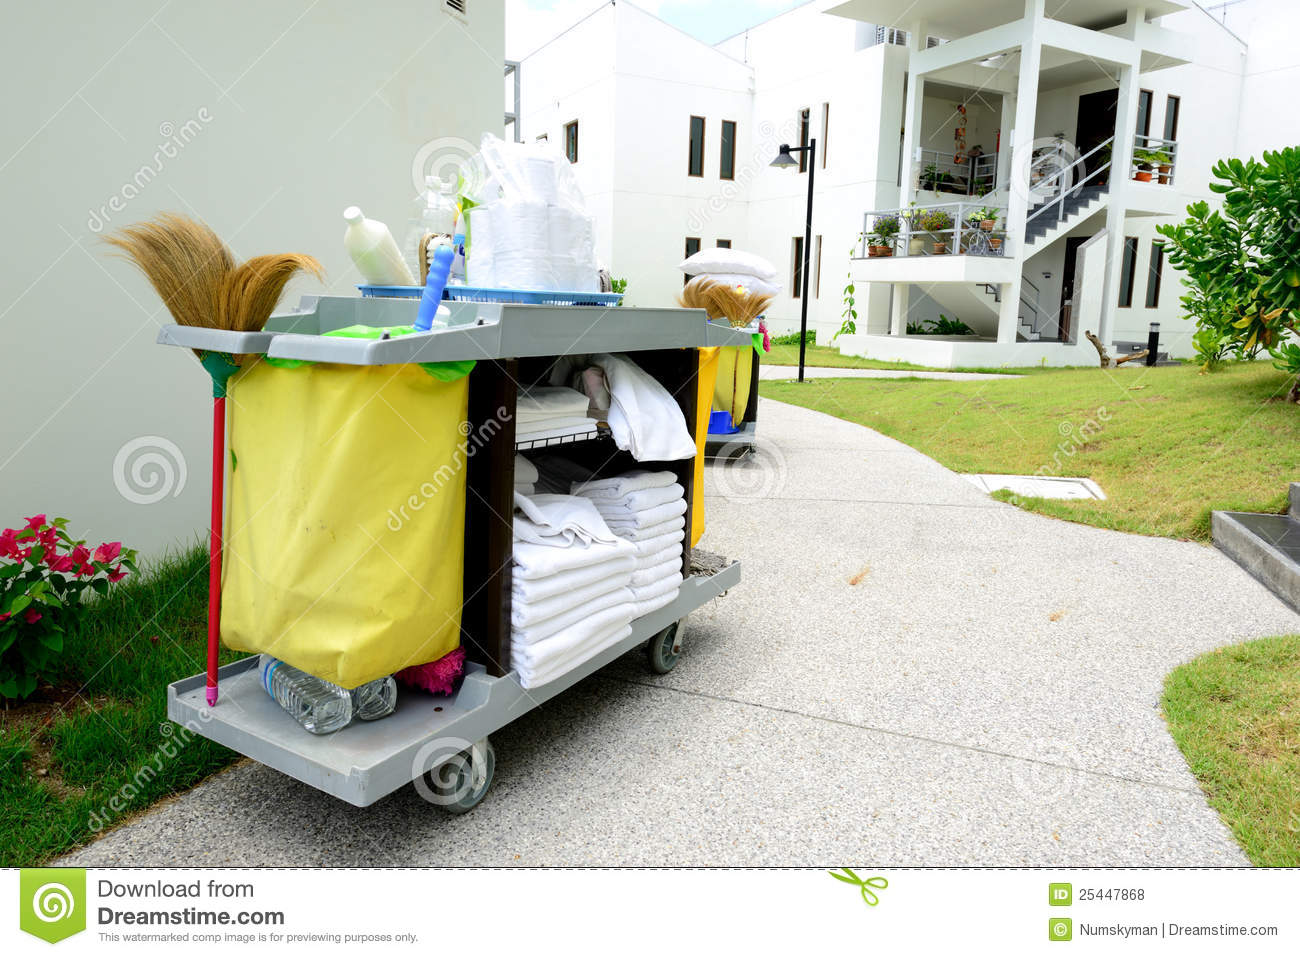 The Hotel Cleaning Tool Trolley Royalty Free Stock Photos - Image: 25447868